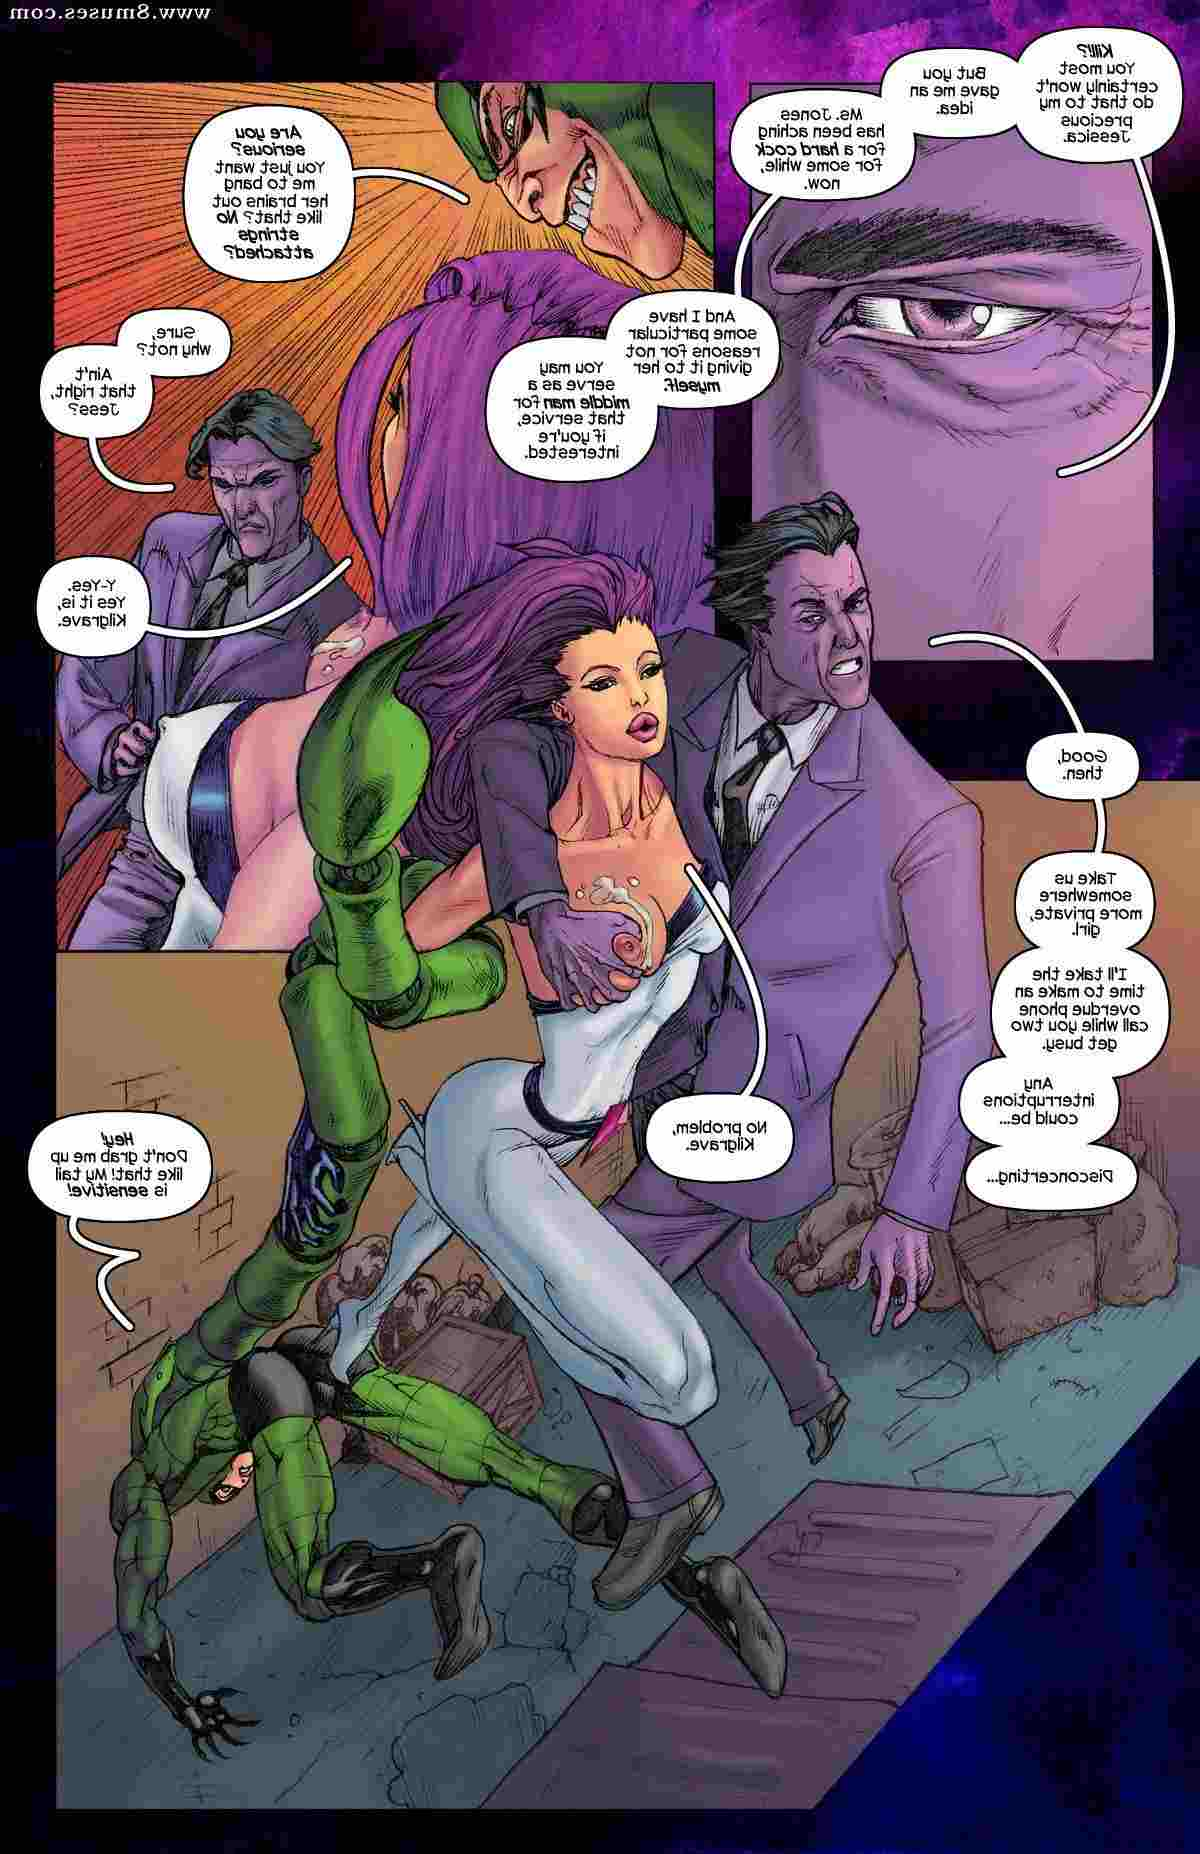 Tracy-Scops-Comics/Jessica-Jones Jessica_Jones__8muses_-_Sex_and_Porn_Comics_4.jpg